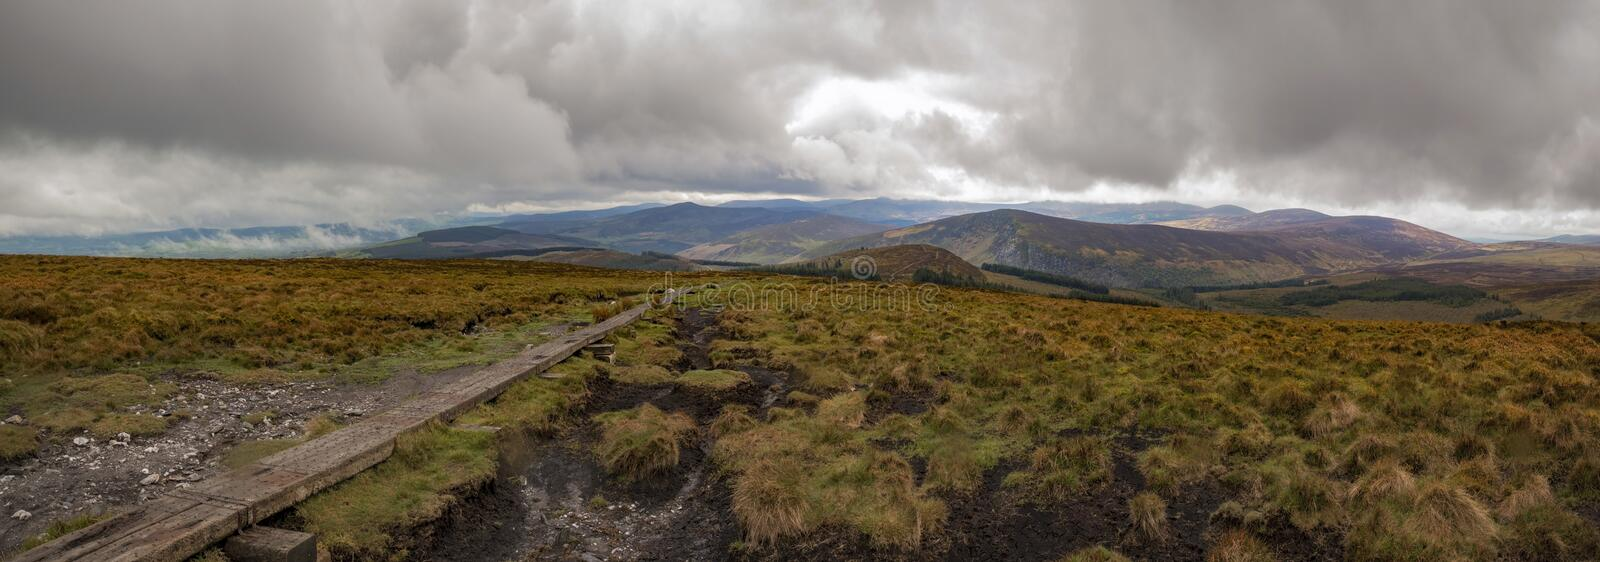 Wicklow way trail leading to the vibrant irish panorama landscape stock photography